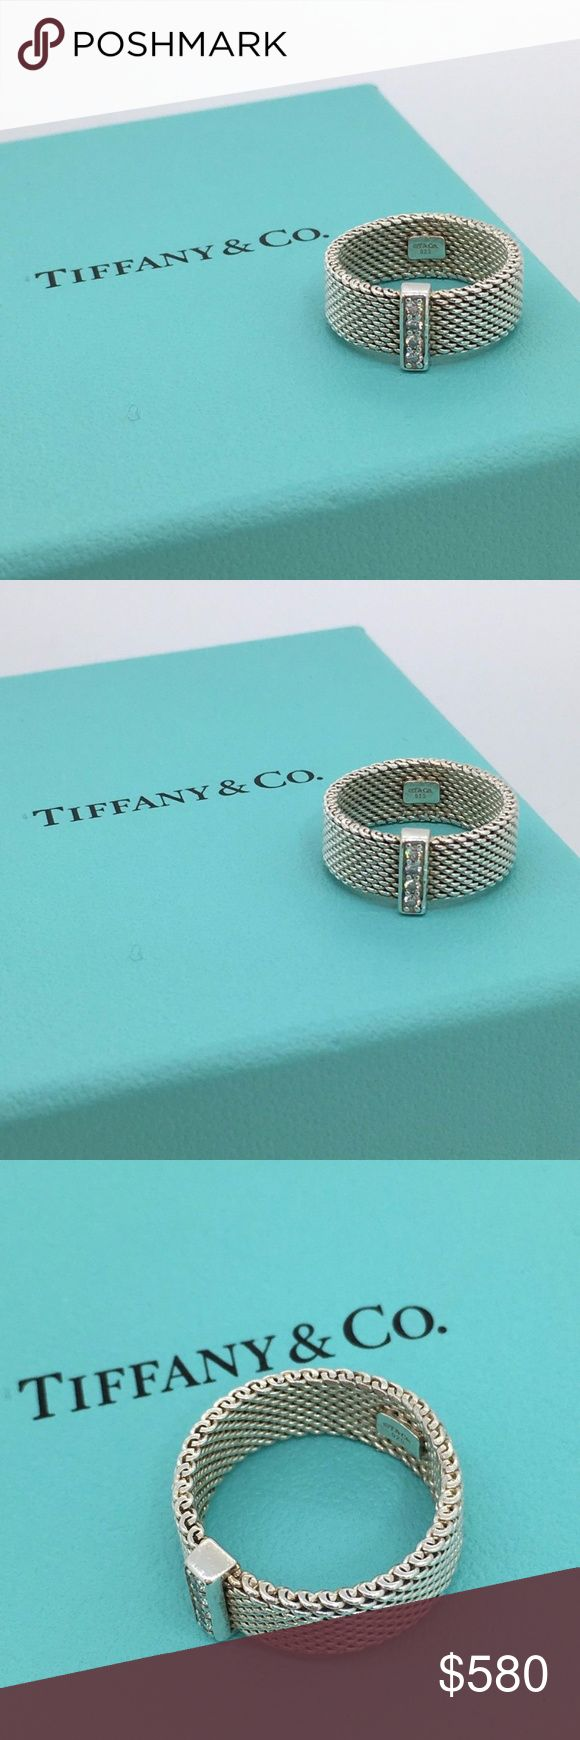 Tiffany & Co. Somerset Sterling & Diamond Ring! Tiffany somerset ring  Sterling silver and natural Round Brilliant VS quality diamonds  .06cttw diamonds  MSRP: $800  Size 6  Comes with original box ans pouch! Tiffany & Co. Jewelry Rings